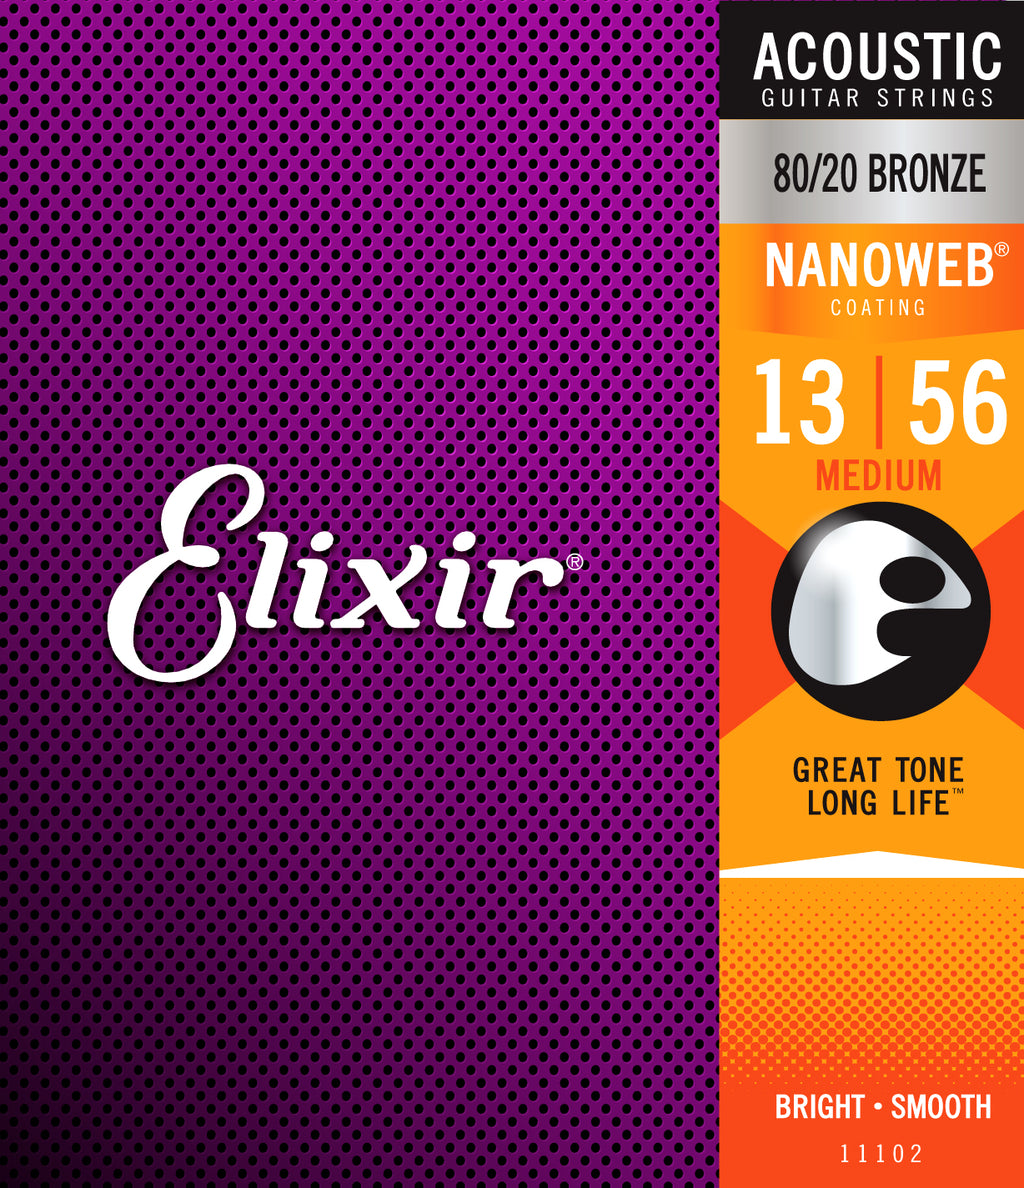 Elixir 11102 Medium NanoWeb Acoustic Guitar Strings (13-56)